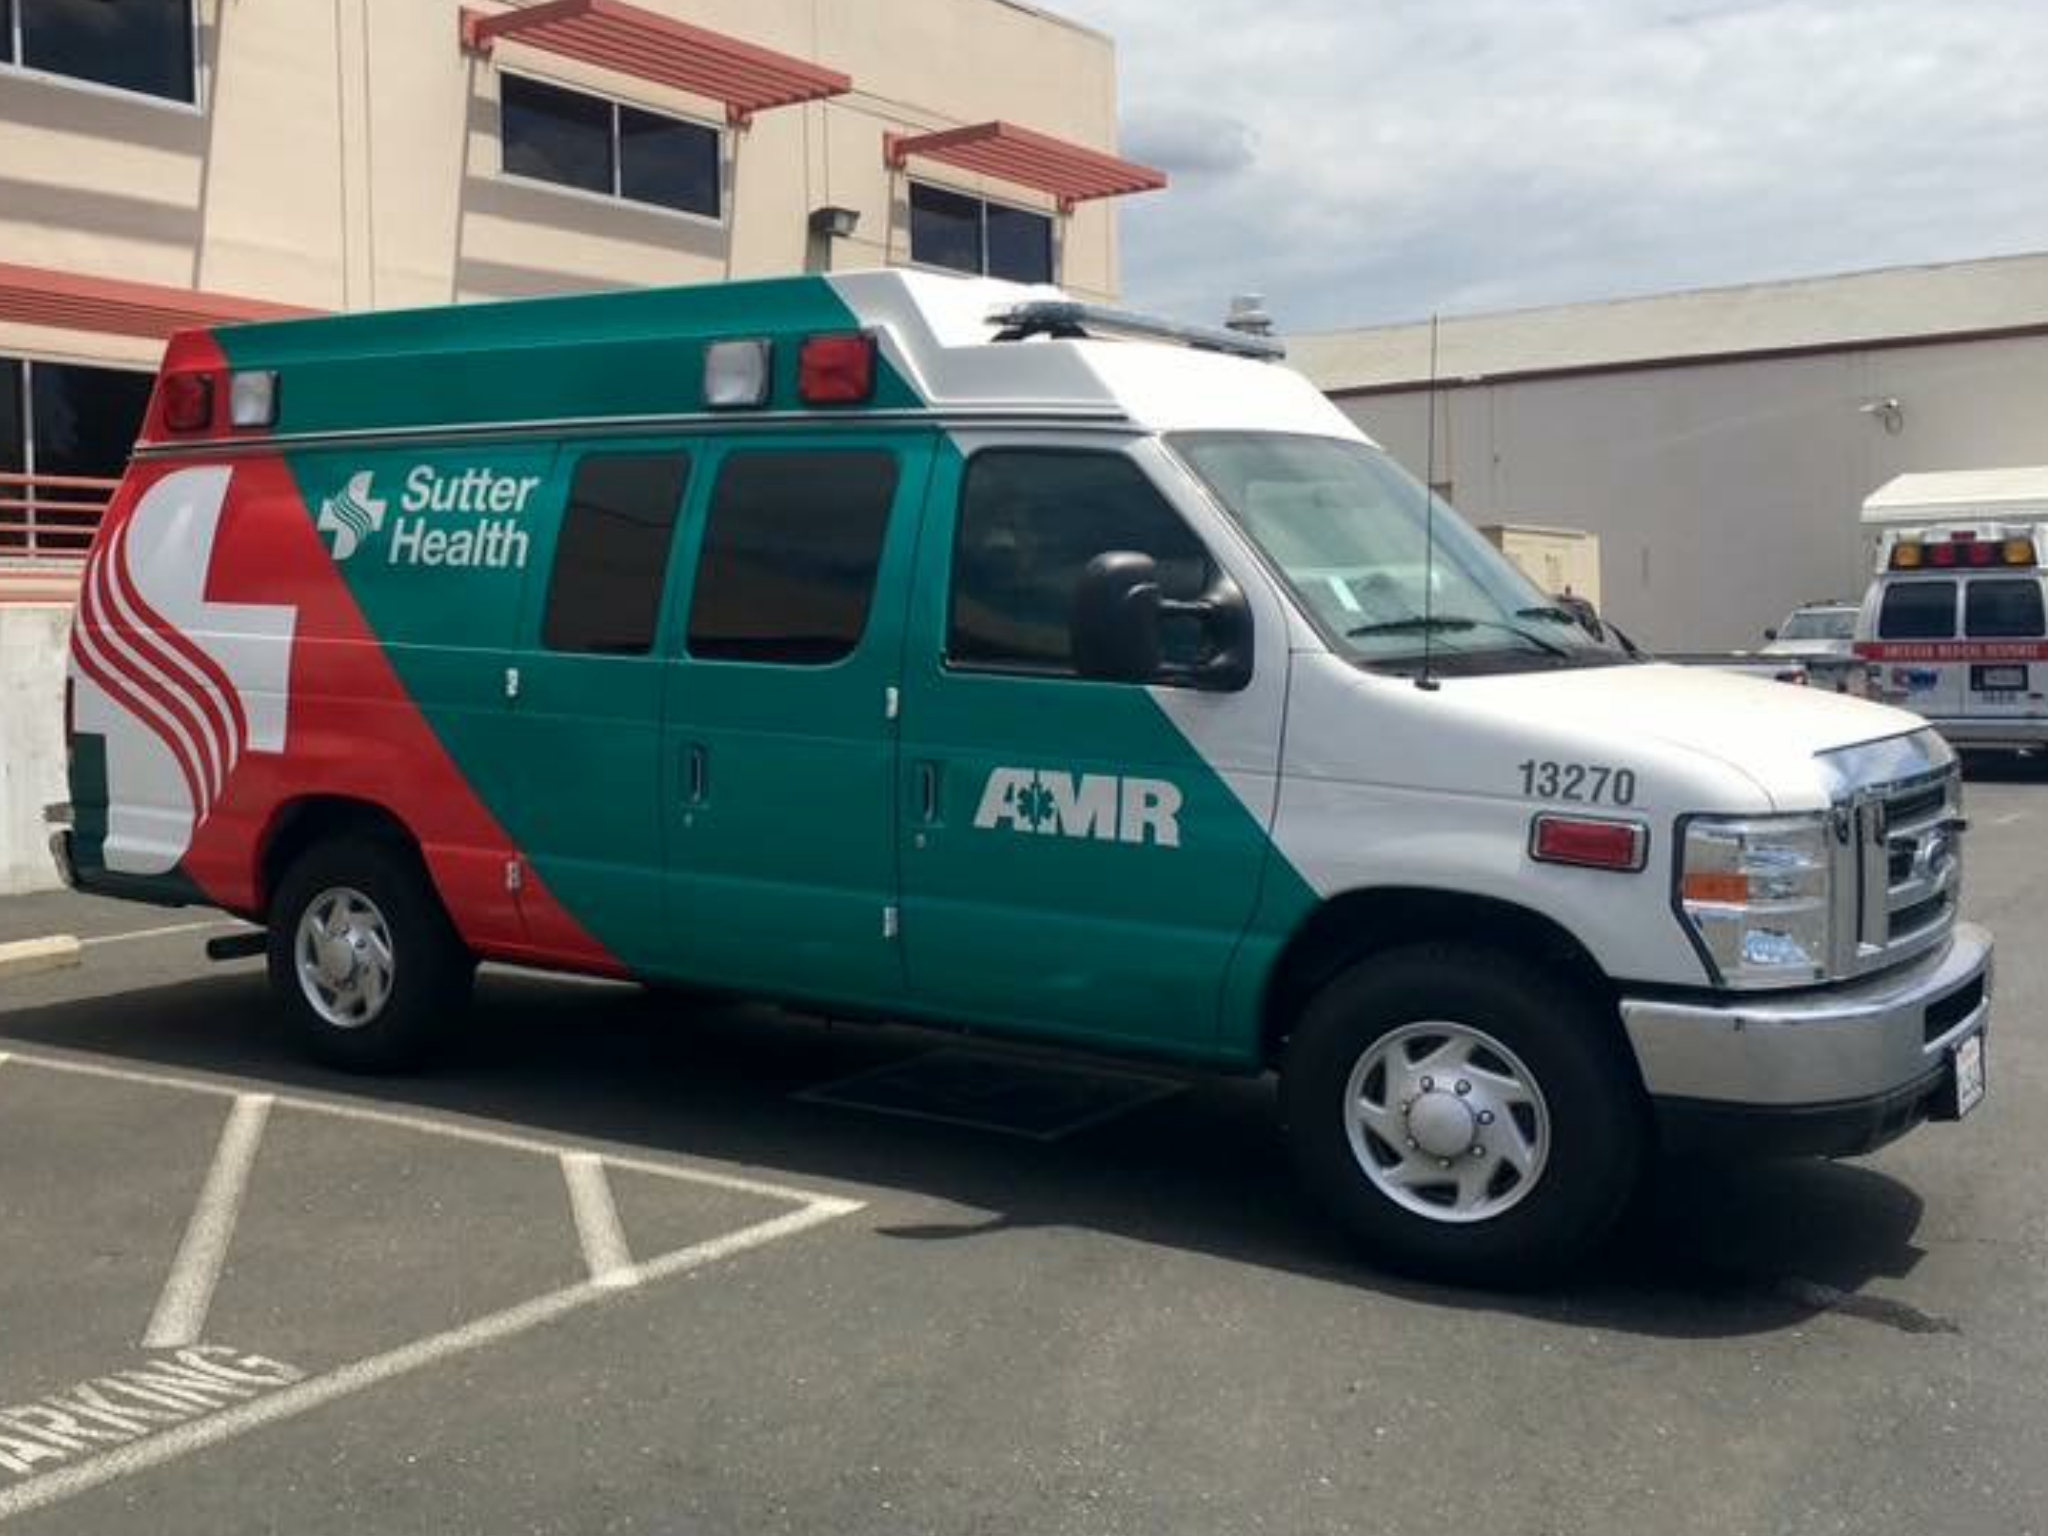 Amr Sutter Health Ford F 350 Econoline Sacramento Ca Ambulance Emergency Vehicles Ems Ambulance